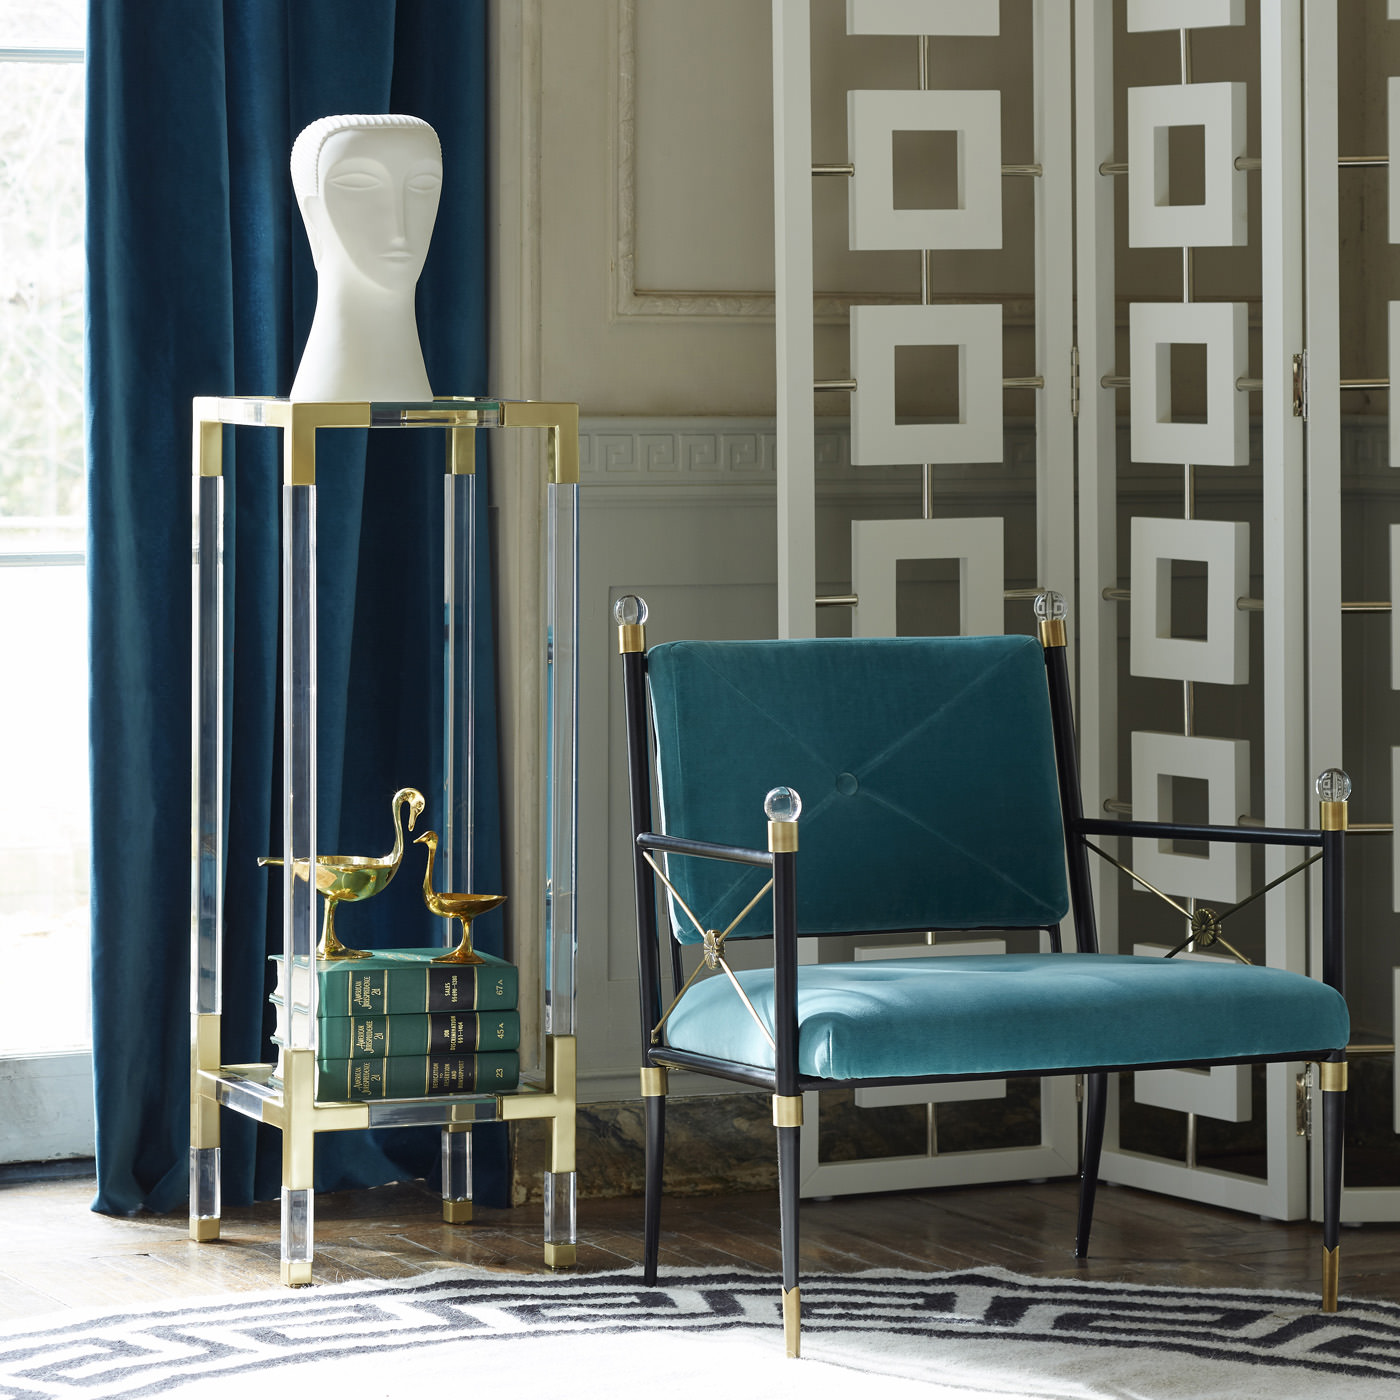 Lucite pedestal table from Jonathan Adler